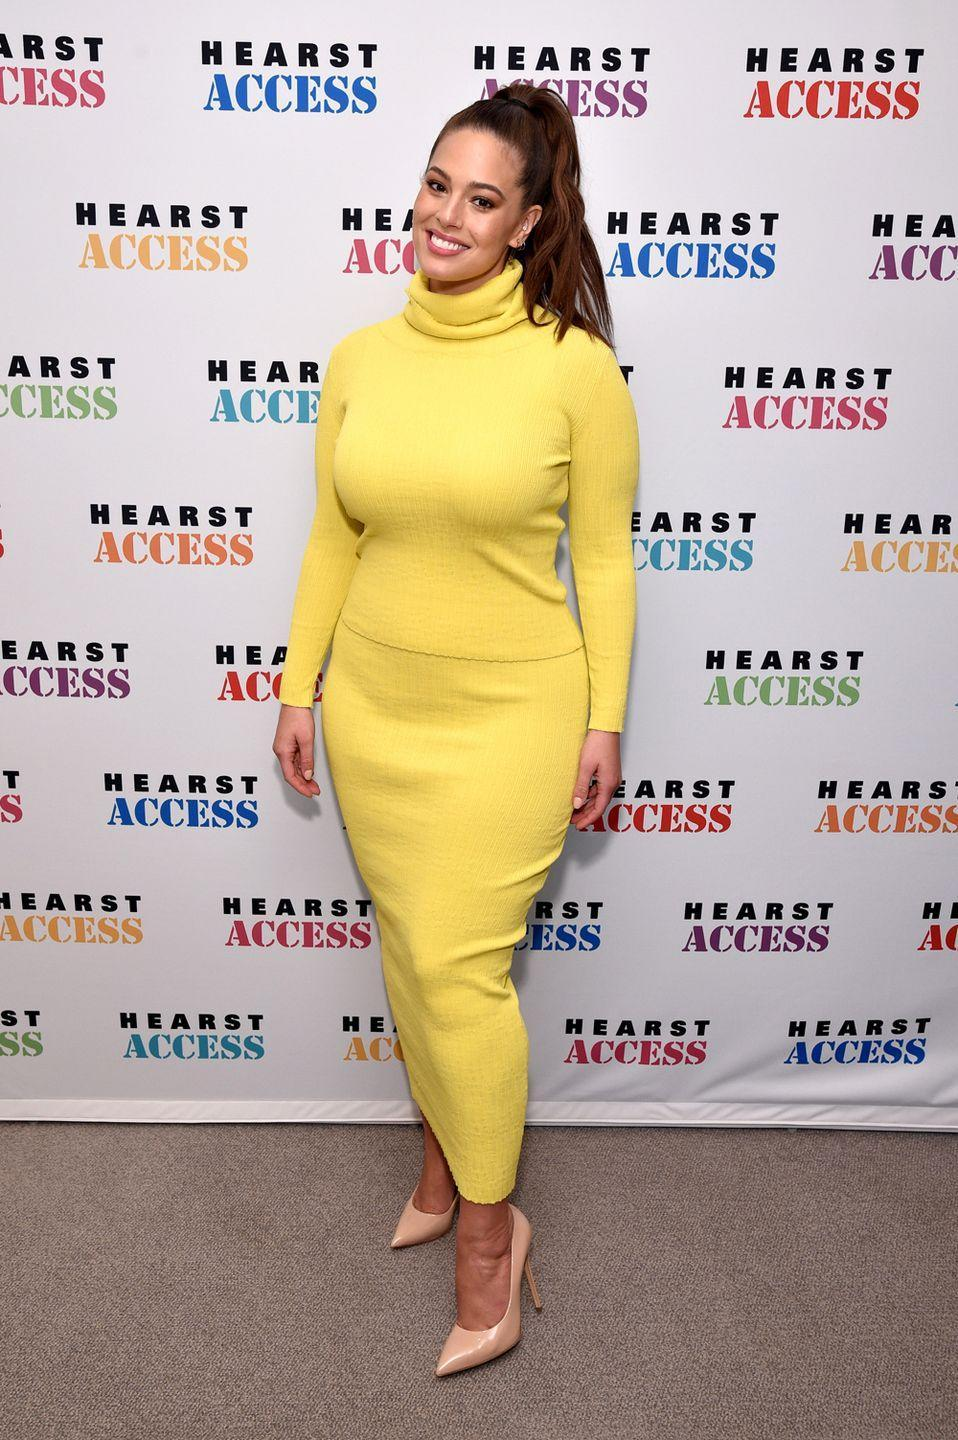 <p>Visiting Hearst Magazines in New York City: Proof that there are no rules when it comes to plus-size fashion. Ashley made a statement in this bright yellow roll neck two piece, which makes us hot for all kind of reasons just looking at it.</p>